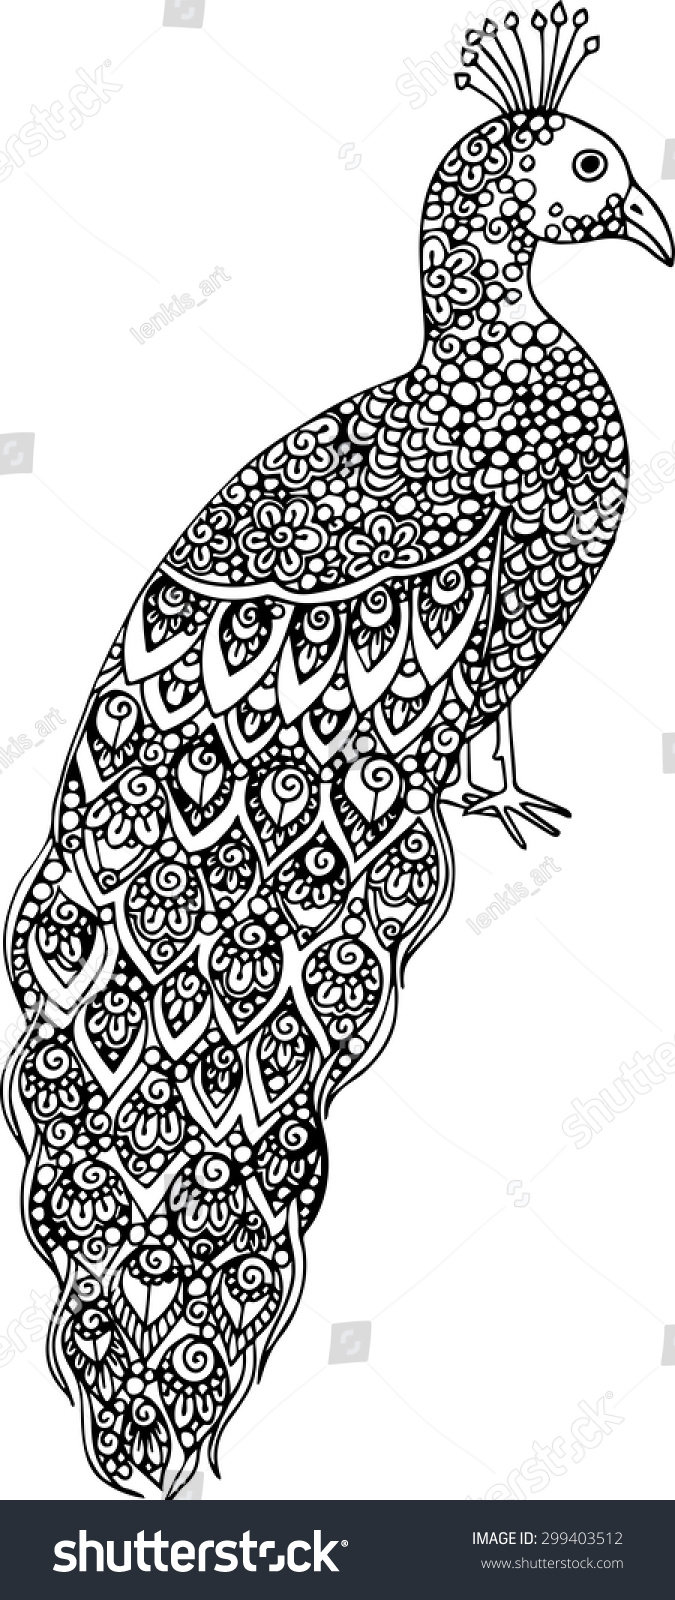 hand drawn doodle peacock illustration decorated stock vector